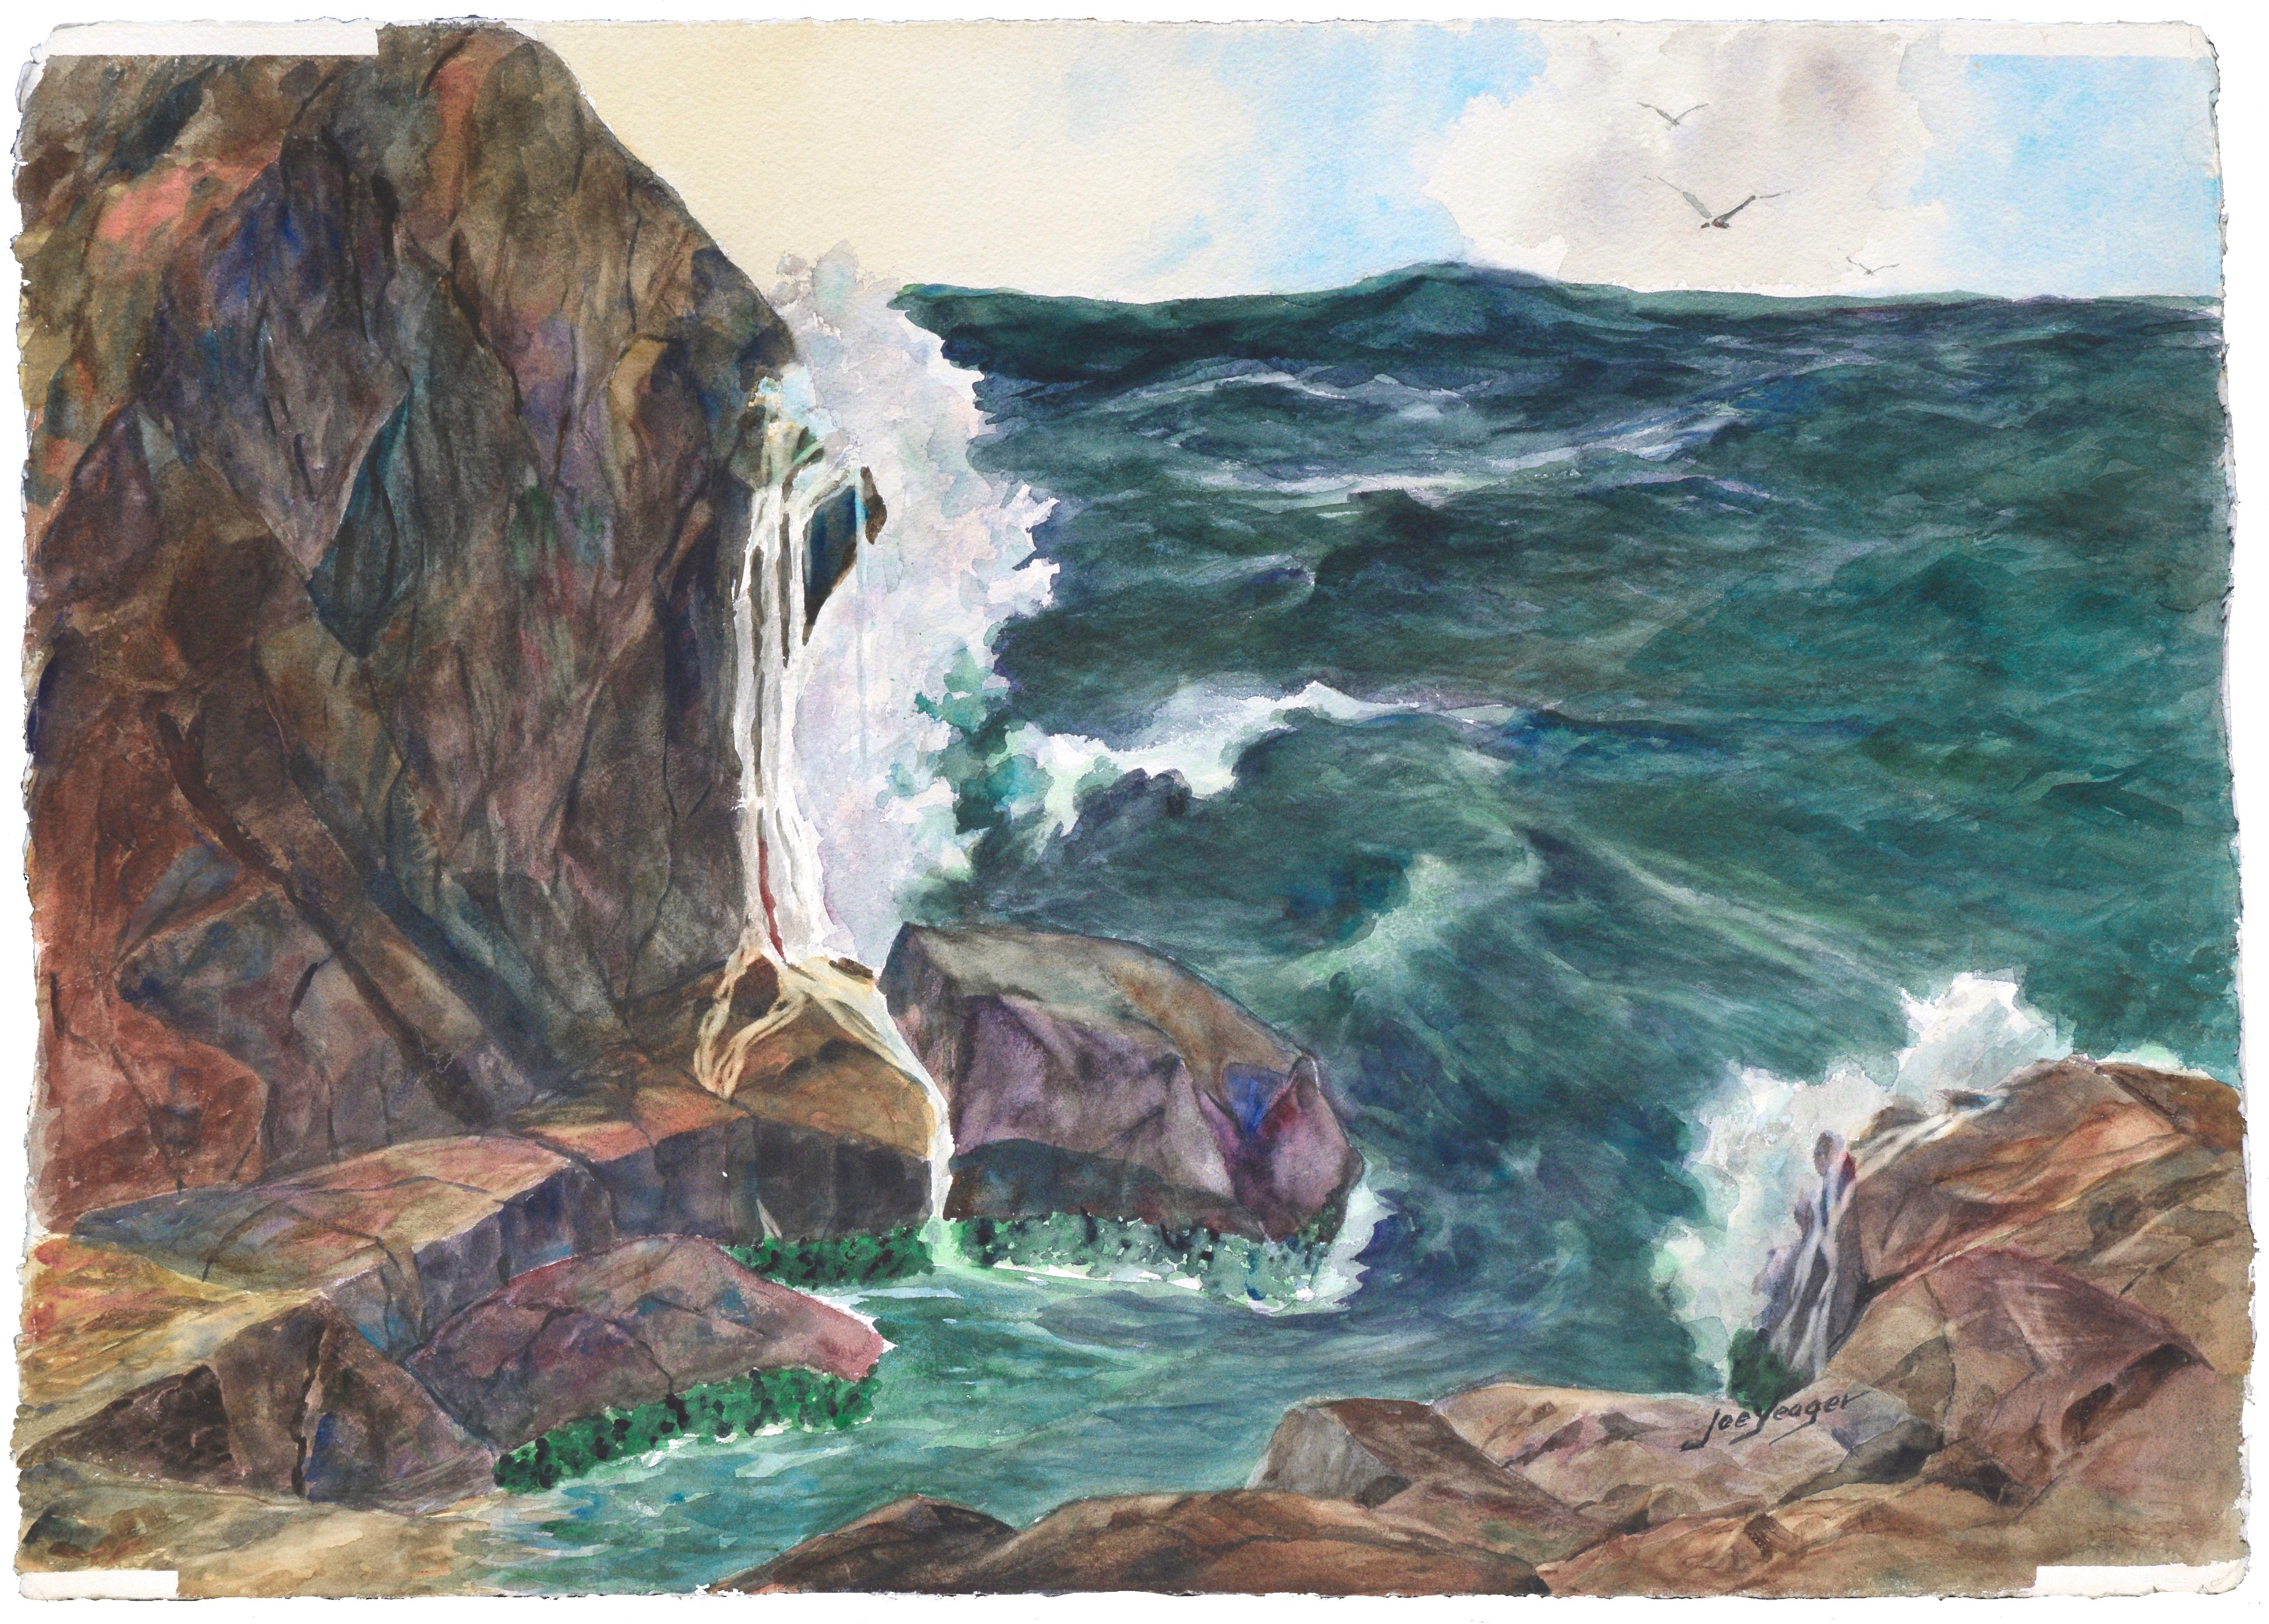 Mid Century Ocean Study - Seascape and Cliff